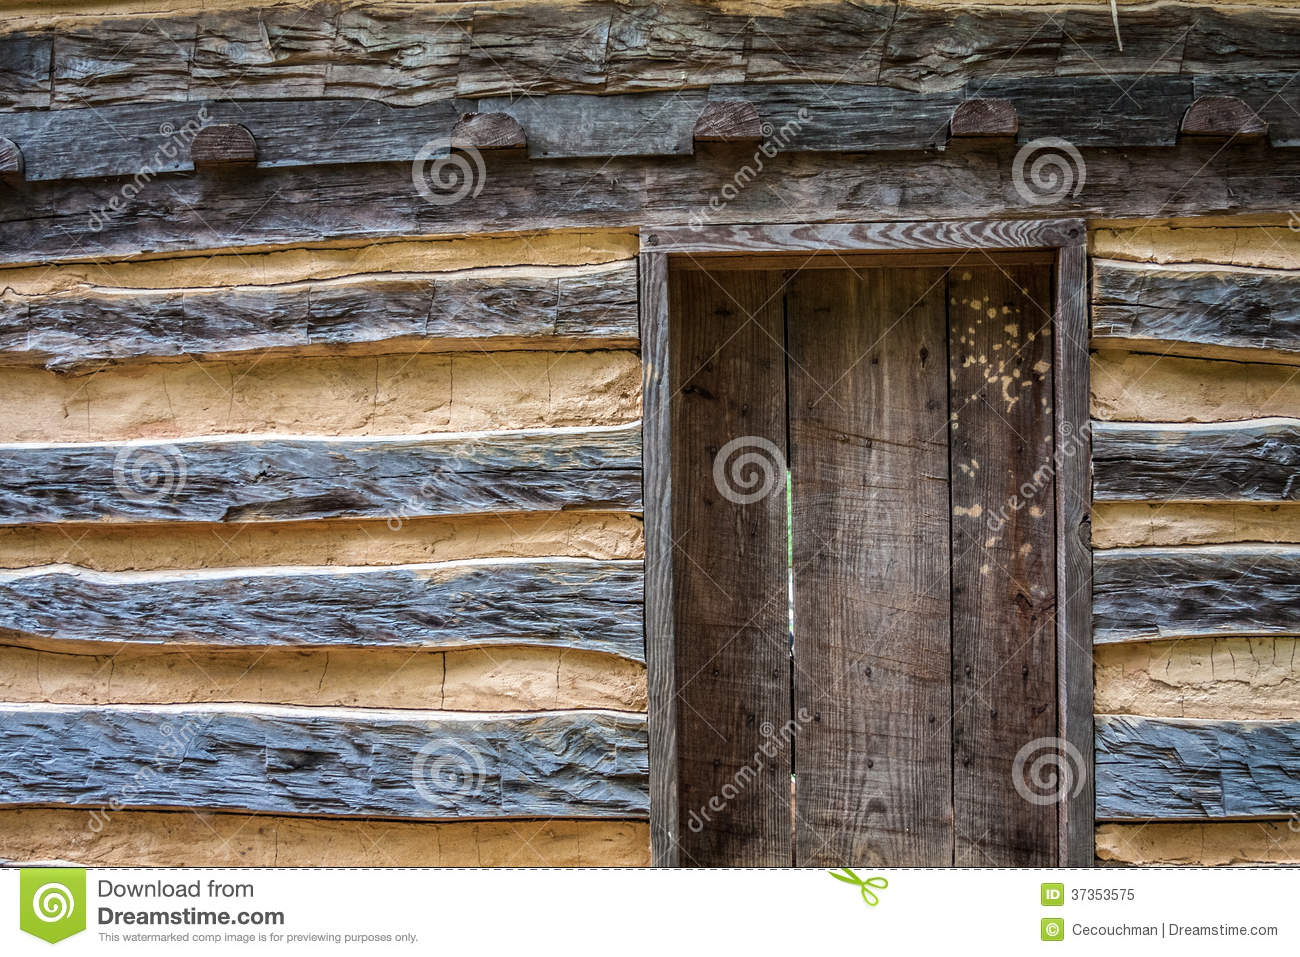 Amazing photo of Rustic Log Cabin With Door Royalty Free Stock Photo Image: 37353575 with #8B6A40 color and 1300x957 pixels